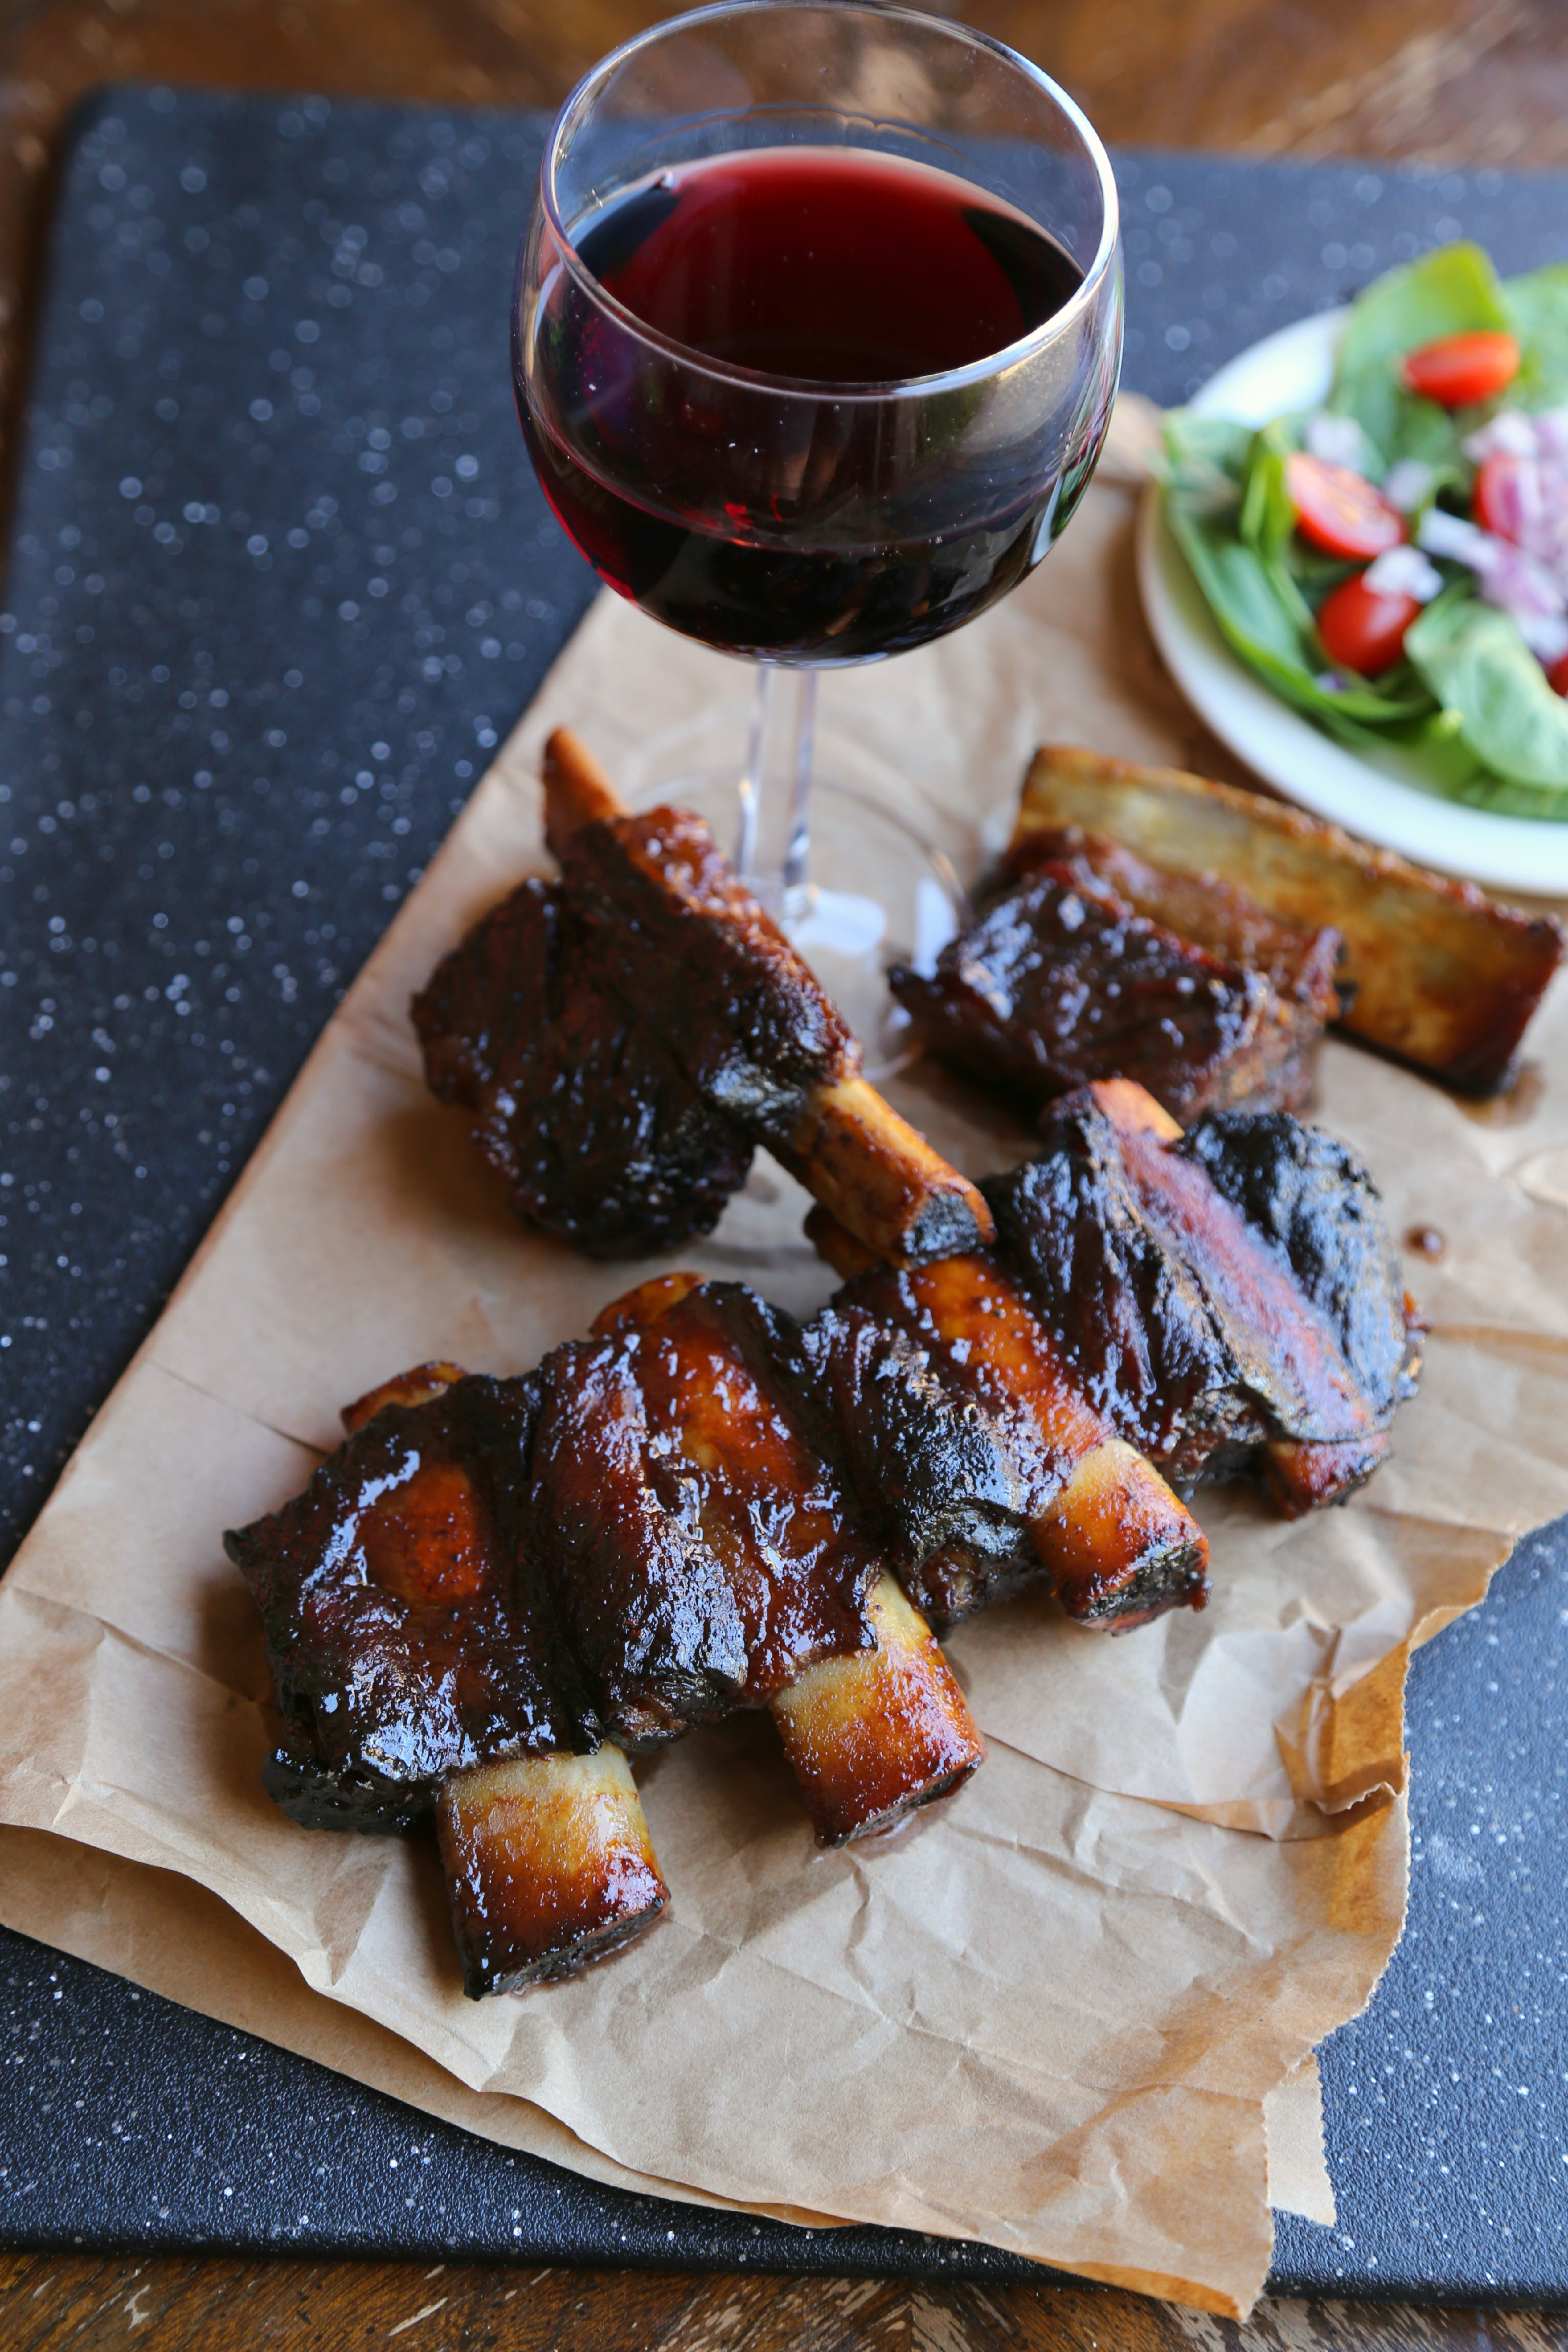 These tamarind oven baked ribs are lip-smacking, finger-lickin' amazing!